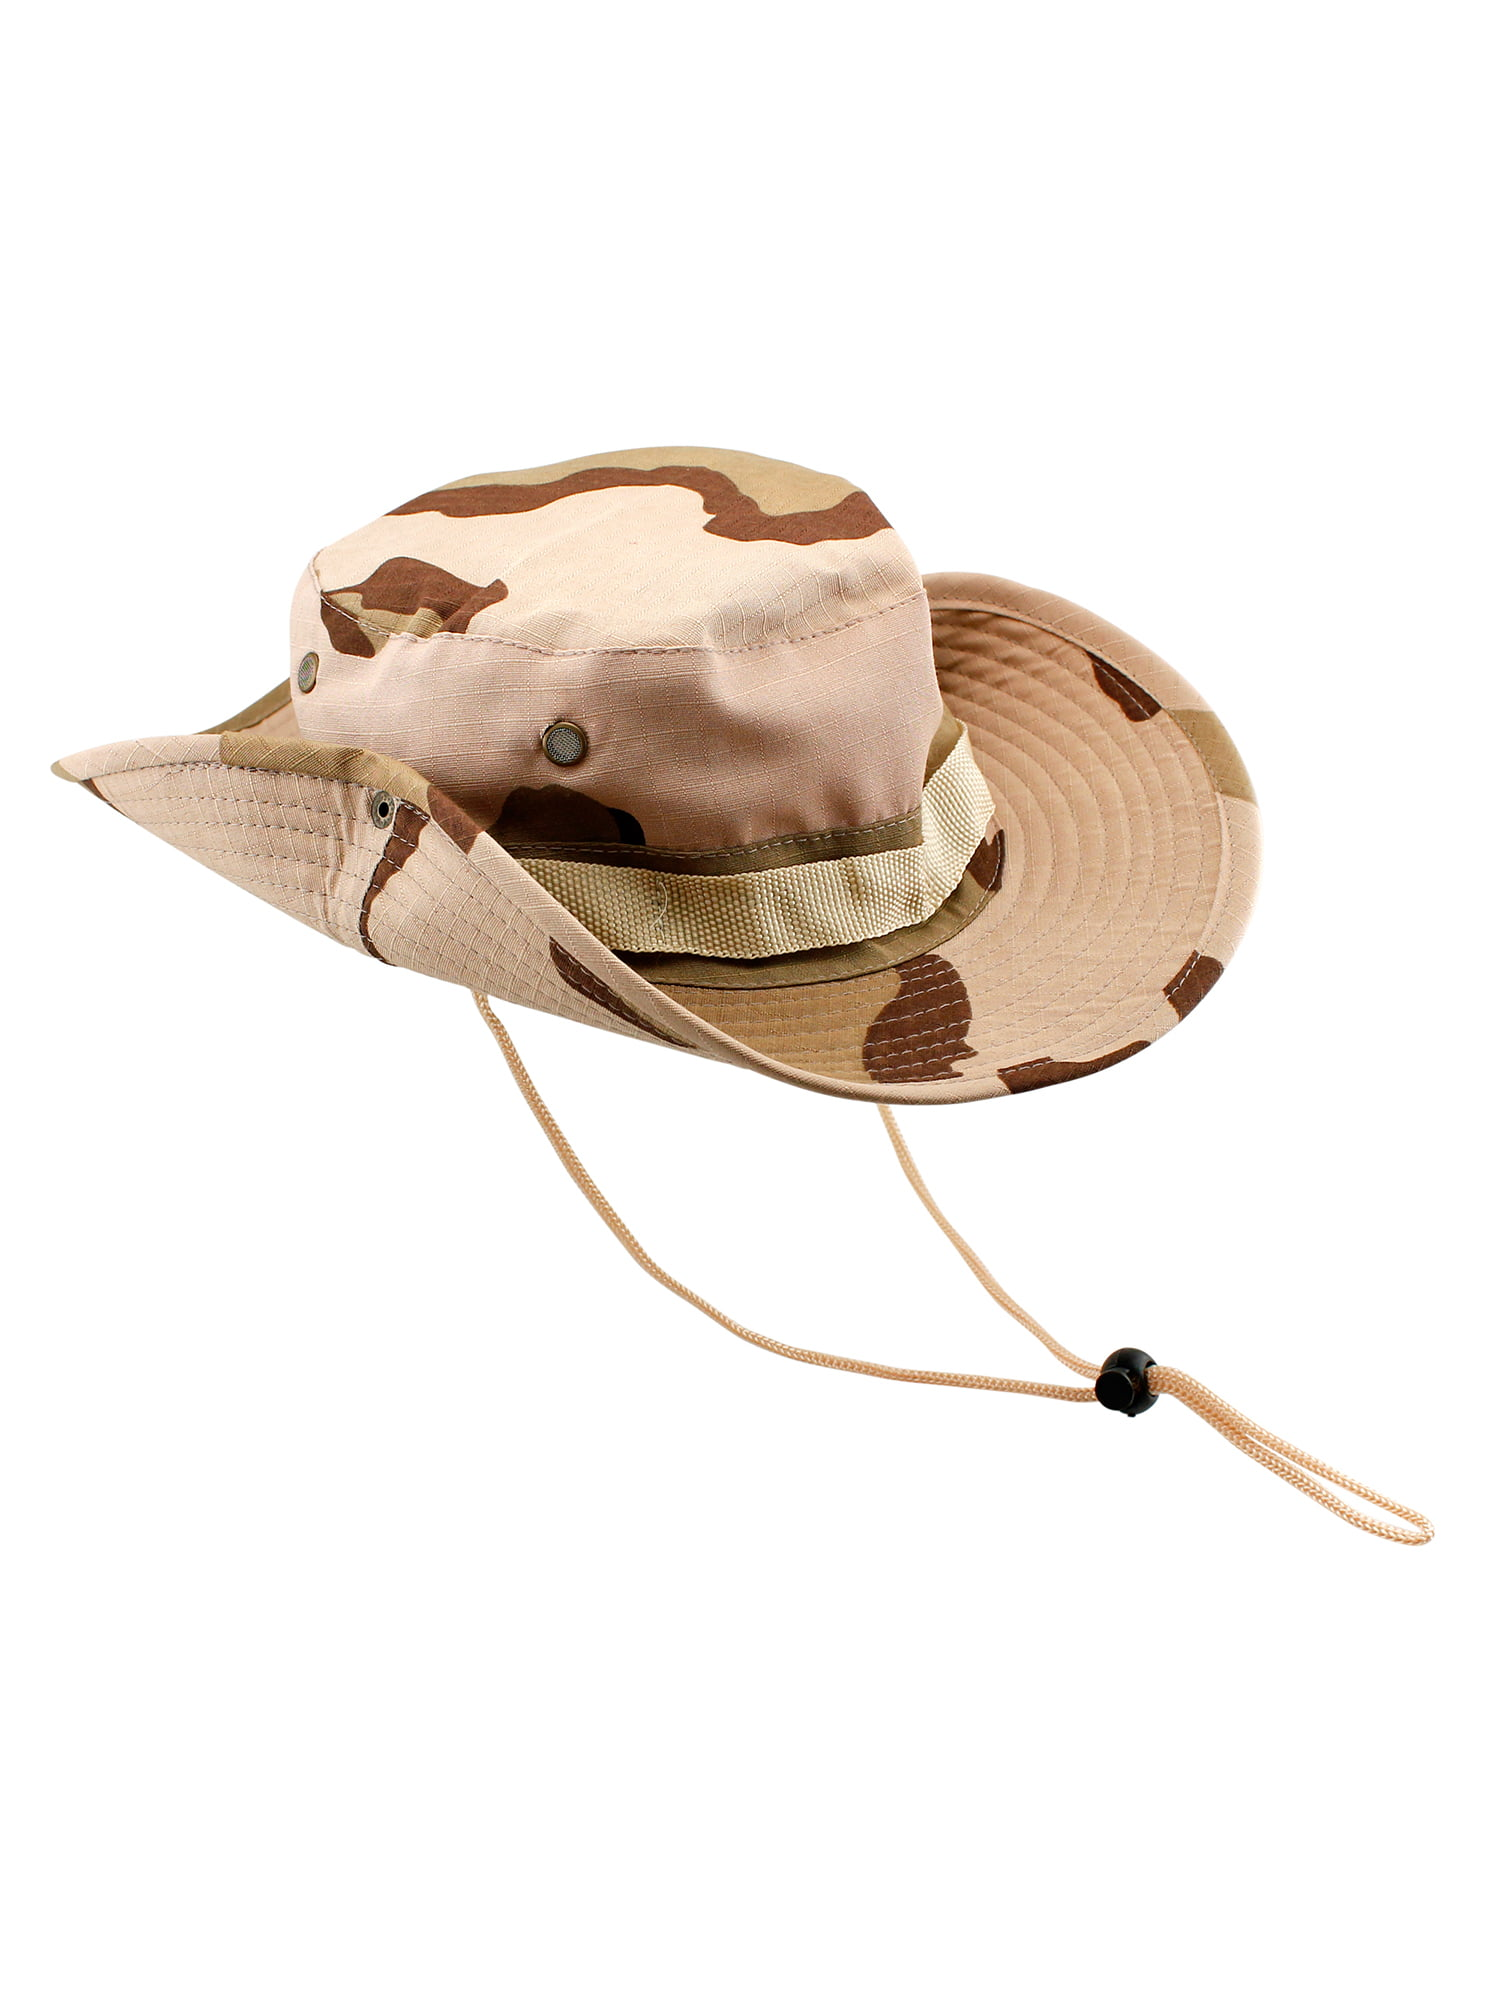 Fishing Hunting Bucket Hat Boonie Outdoor Cap Washed Cotton Safari ...